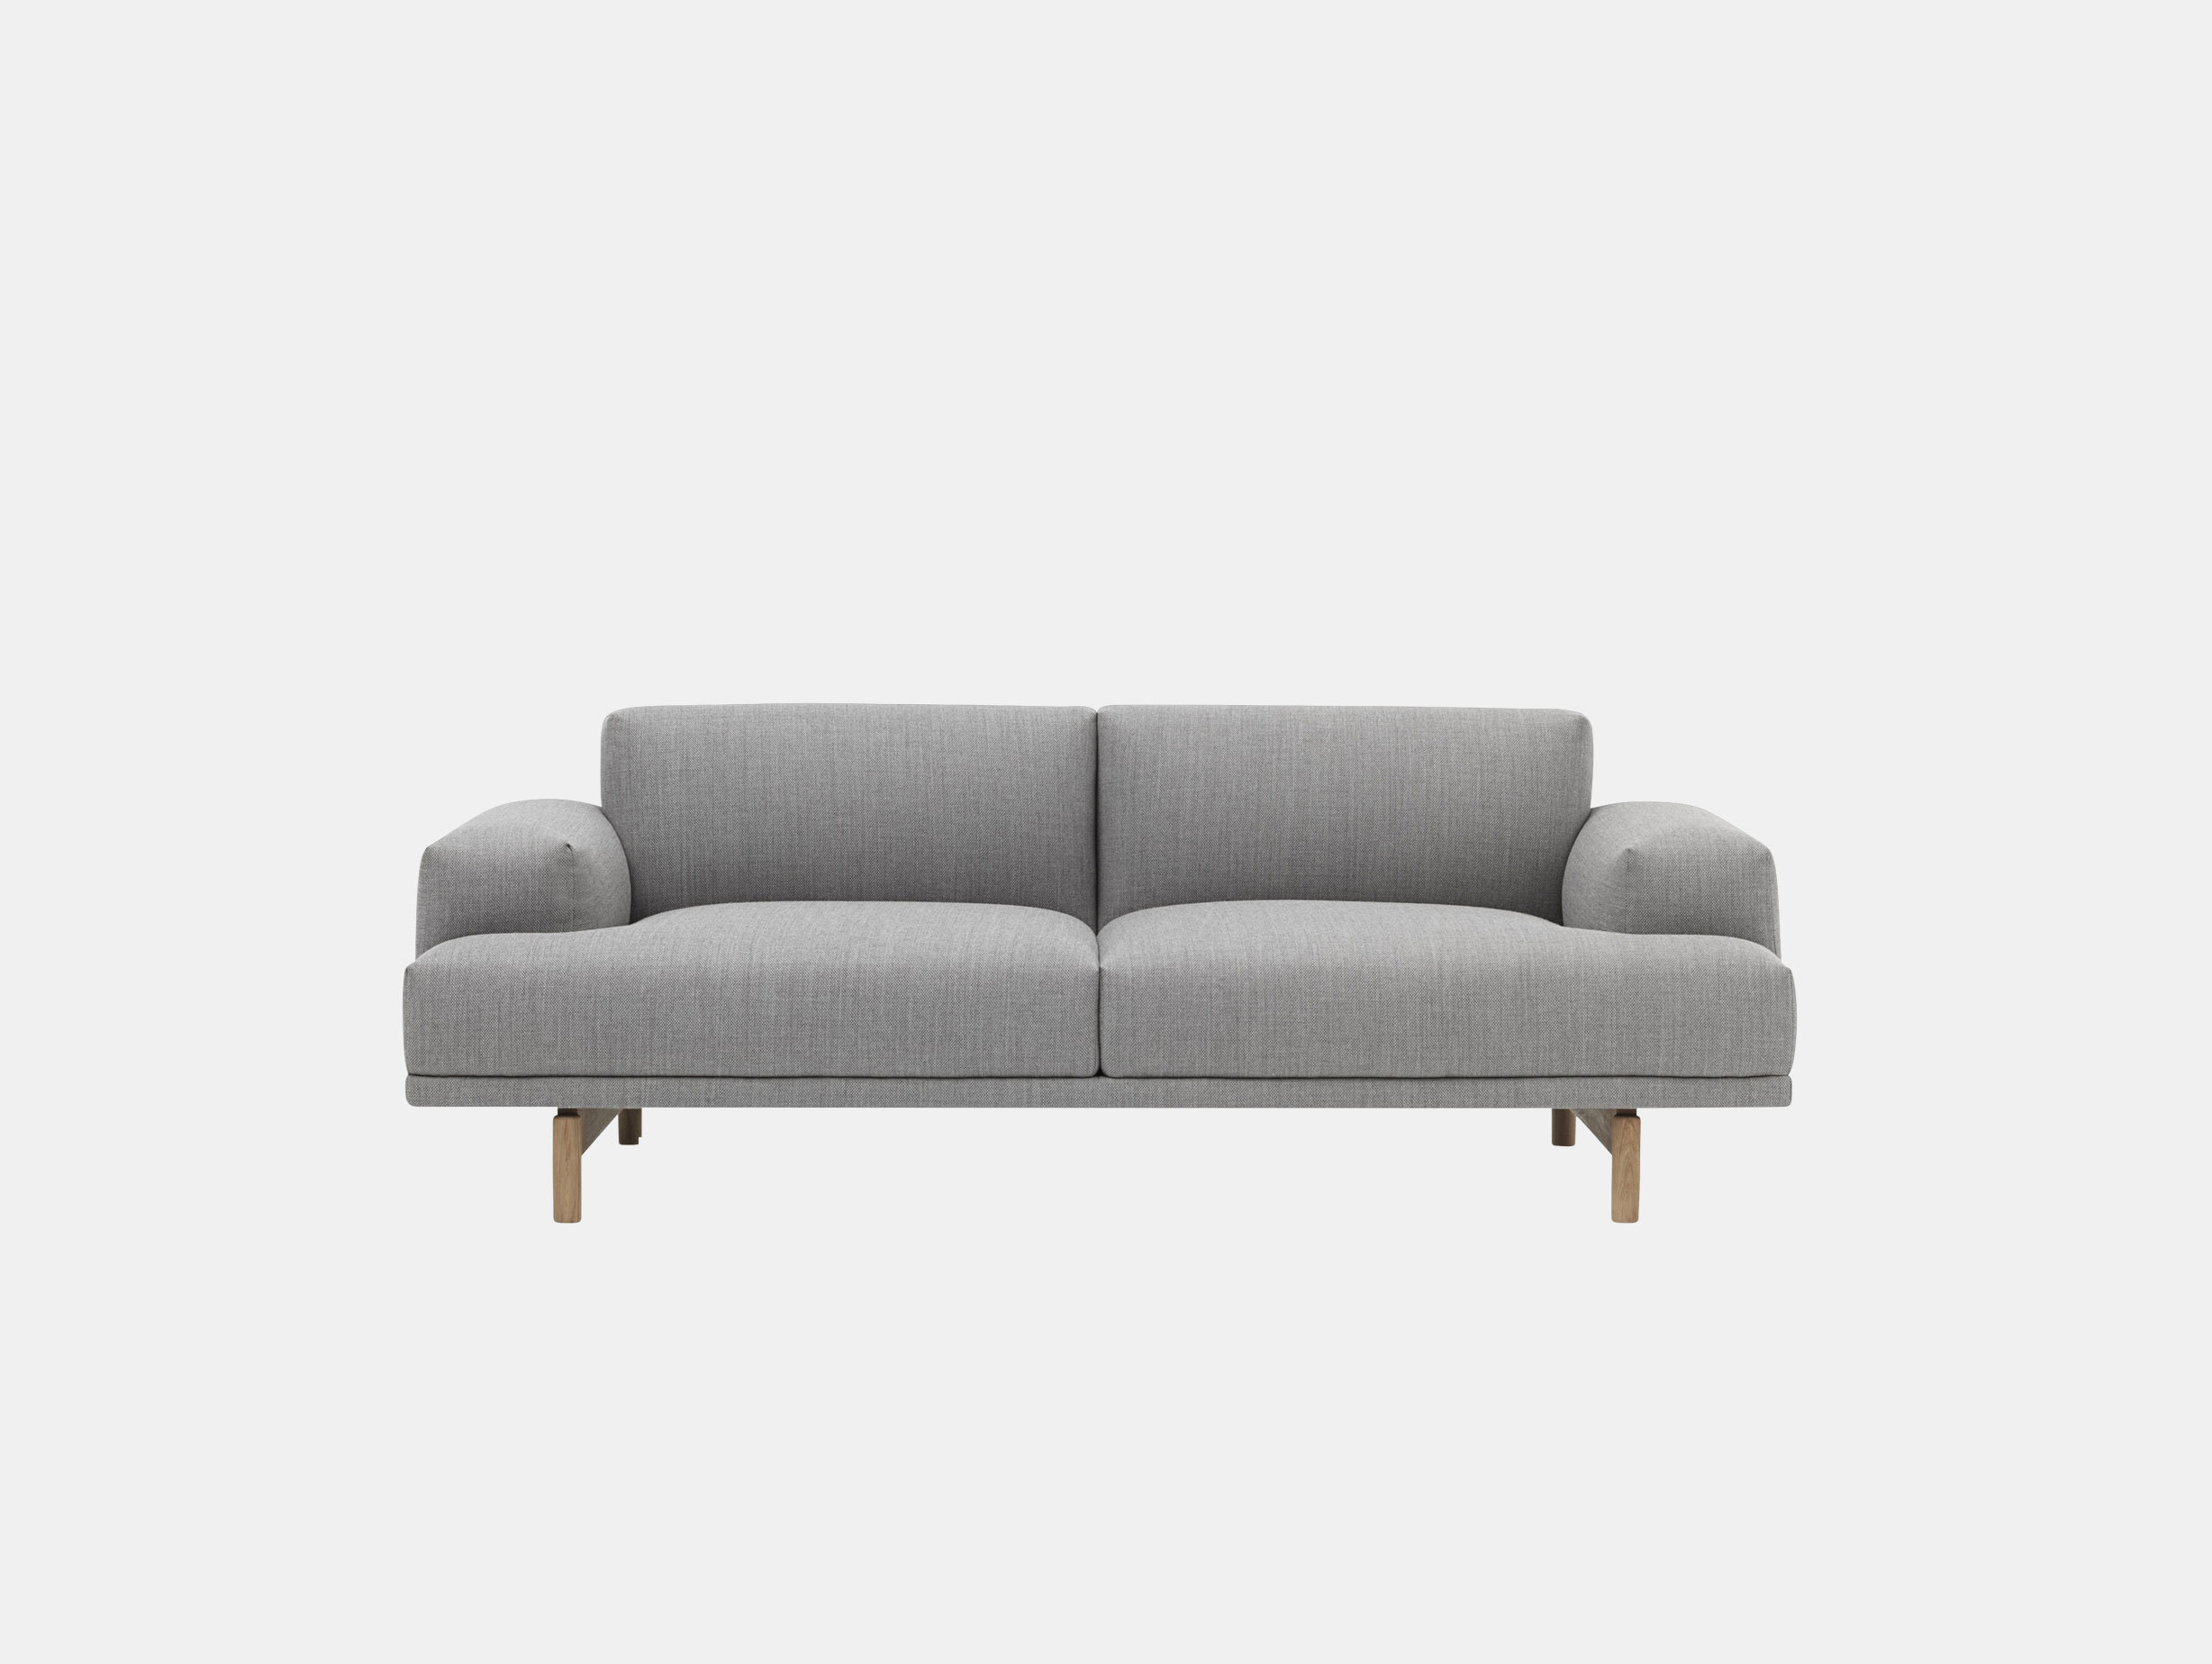 Compose Sofa image 6